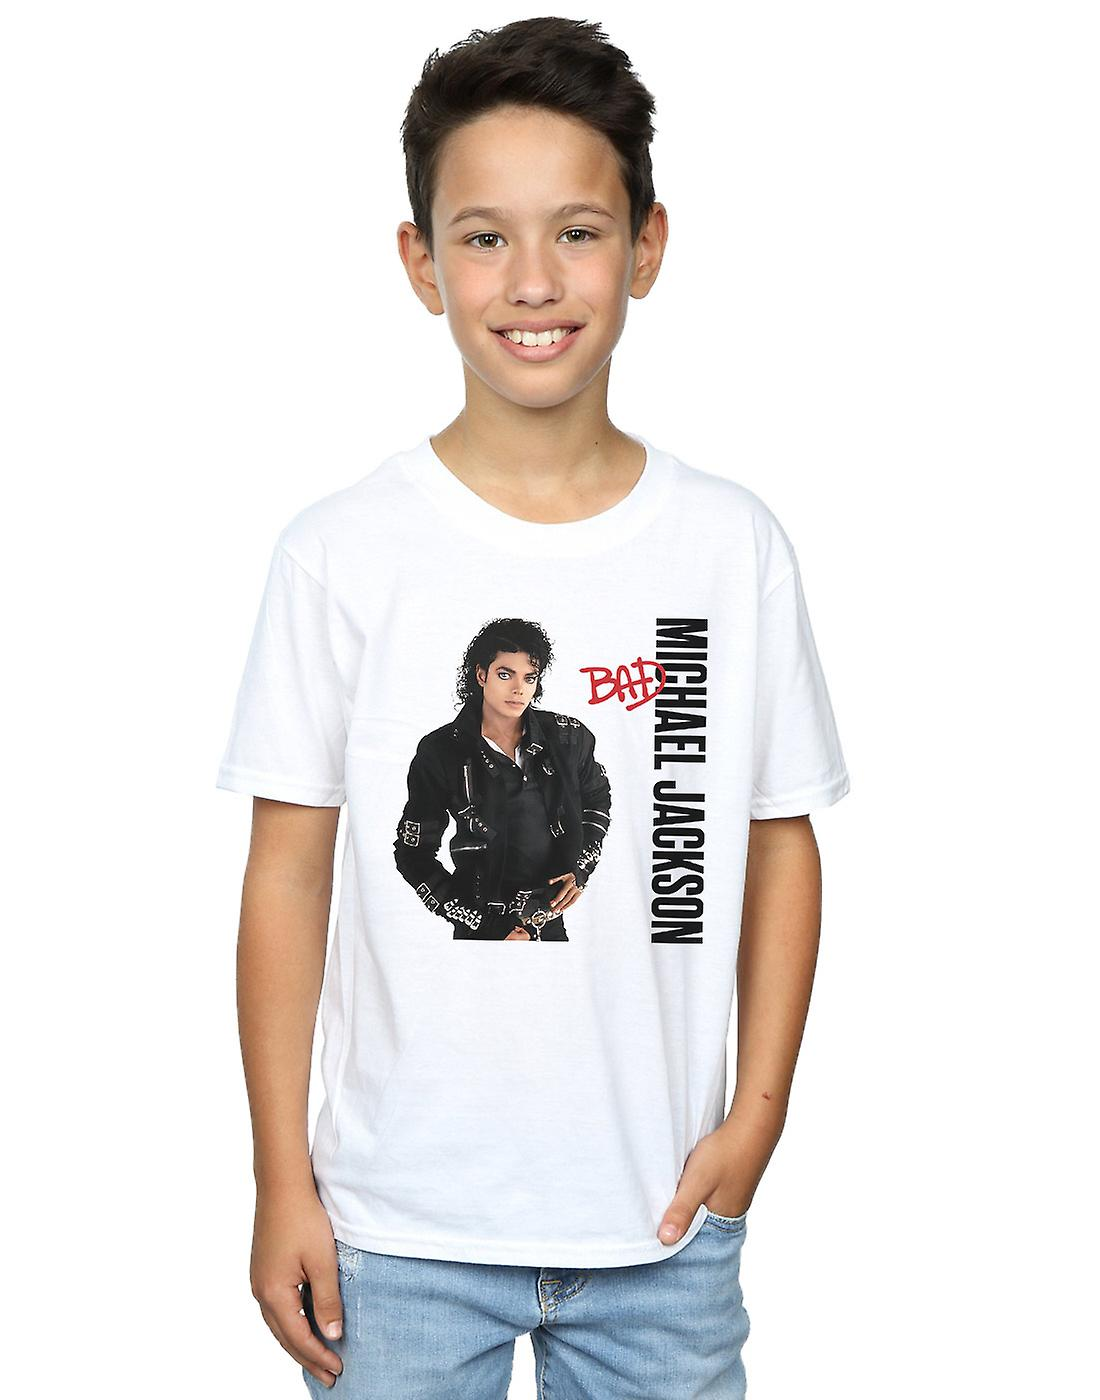 Michael Jackson Boys Bad Pose T-Shirt